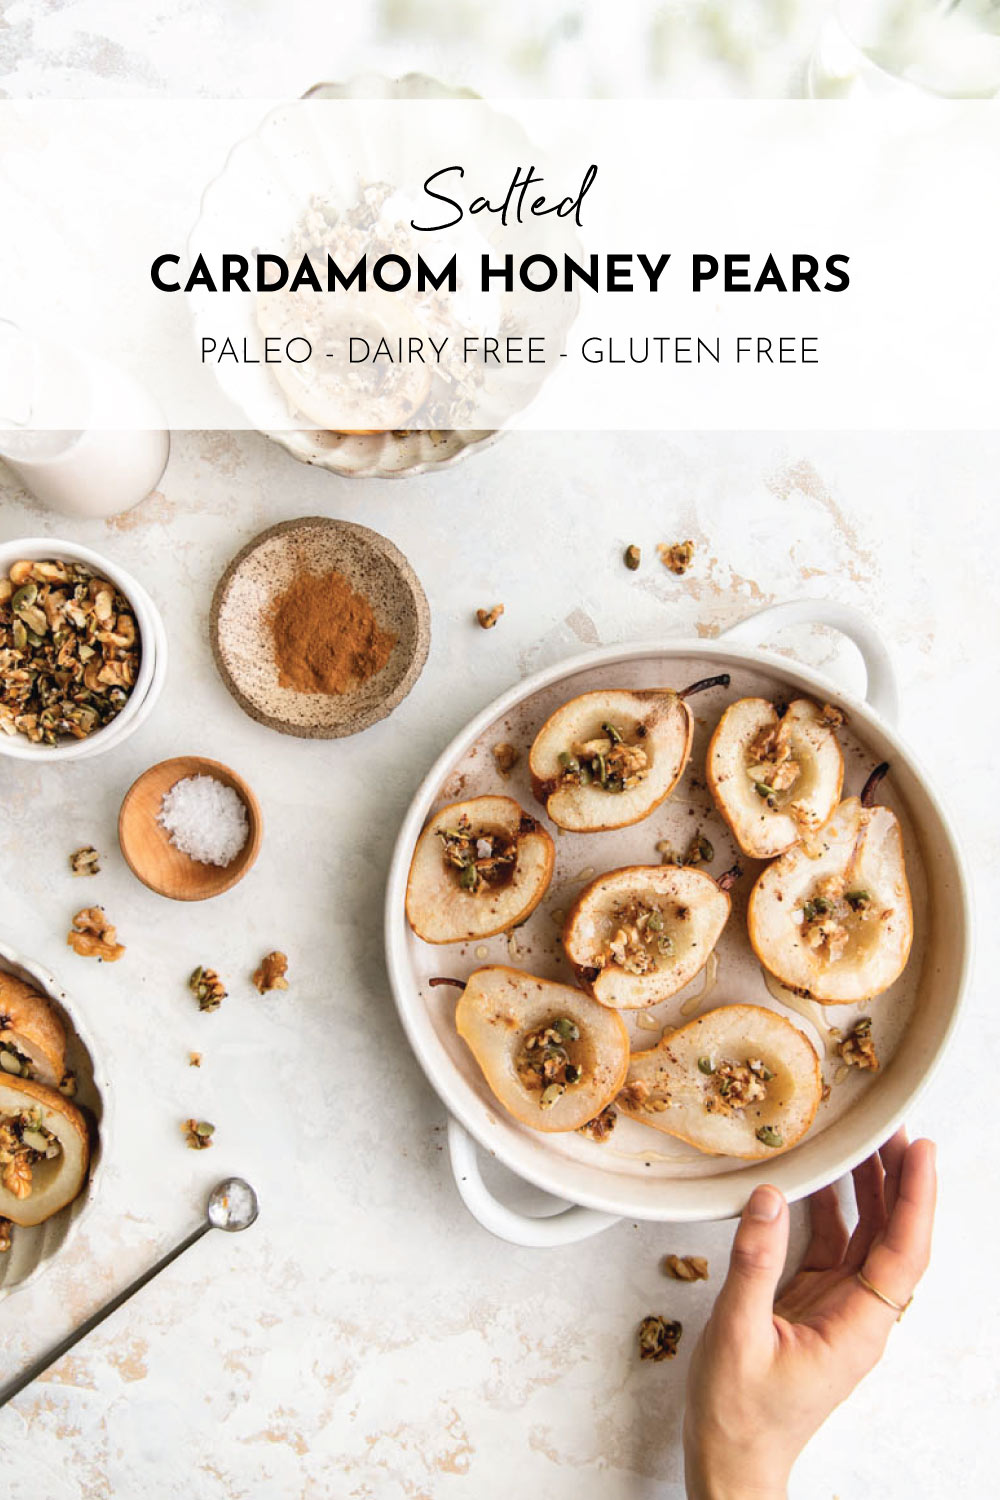 Cardamom and cinnamon dusted pears roasted and topped with a generous drizzle of honey and fancy sea salt --a healthy Paleo dessert!